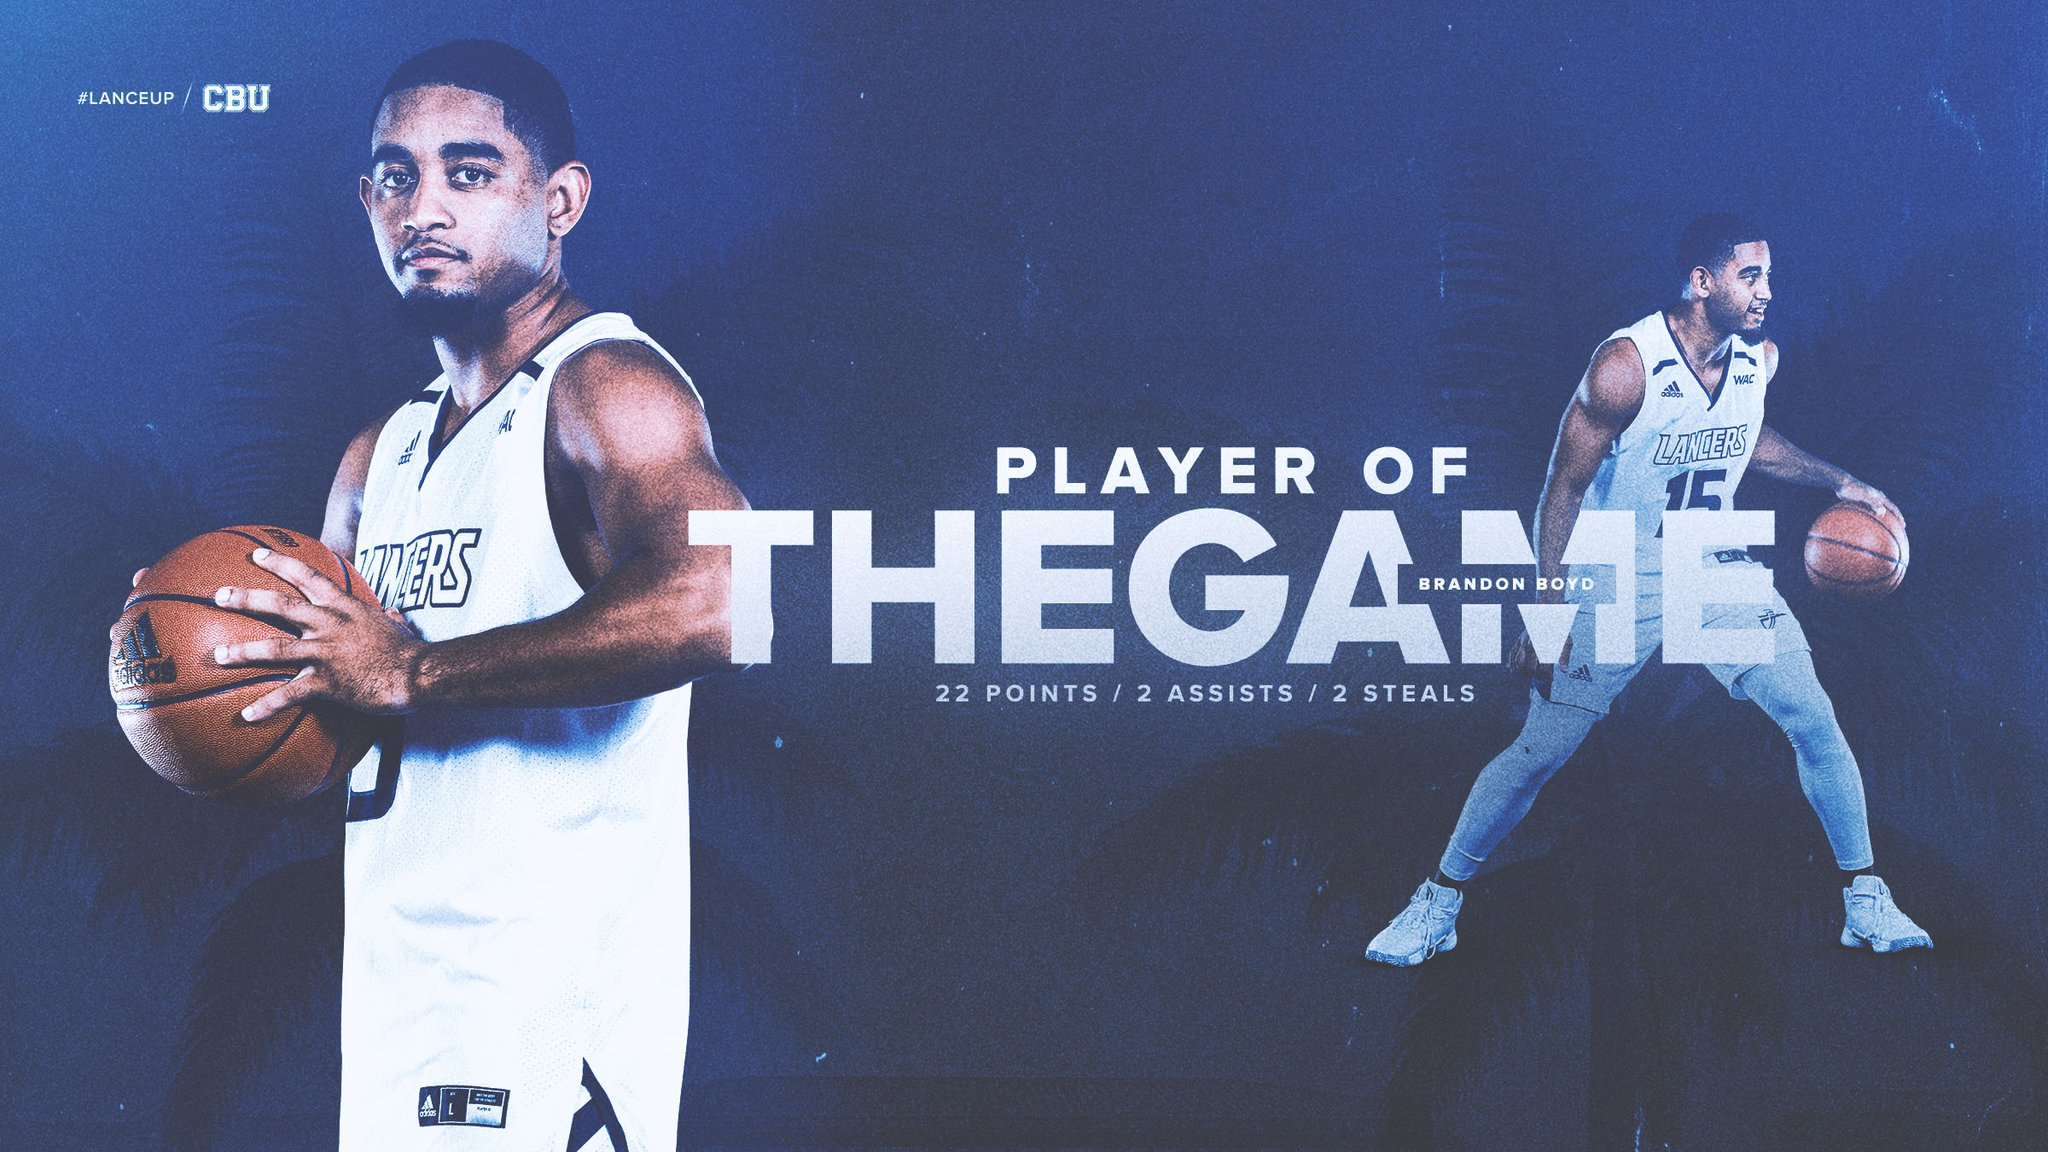 Happy Birthday to tonight\s Player of the Game, Brandon Boyd! |